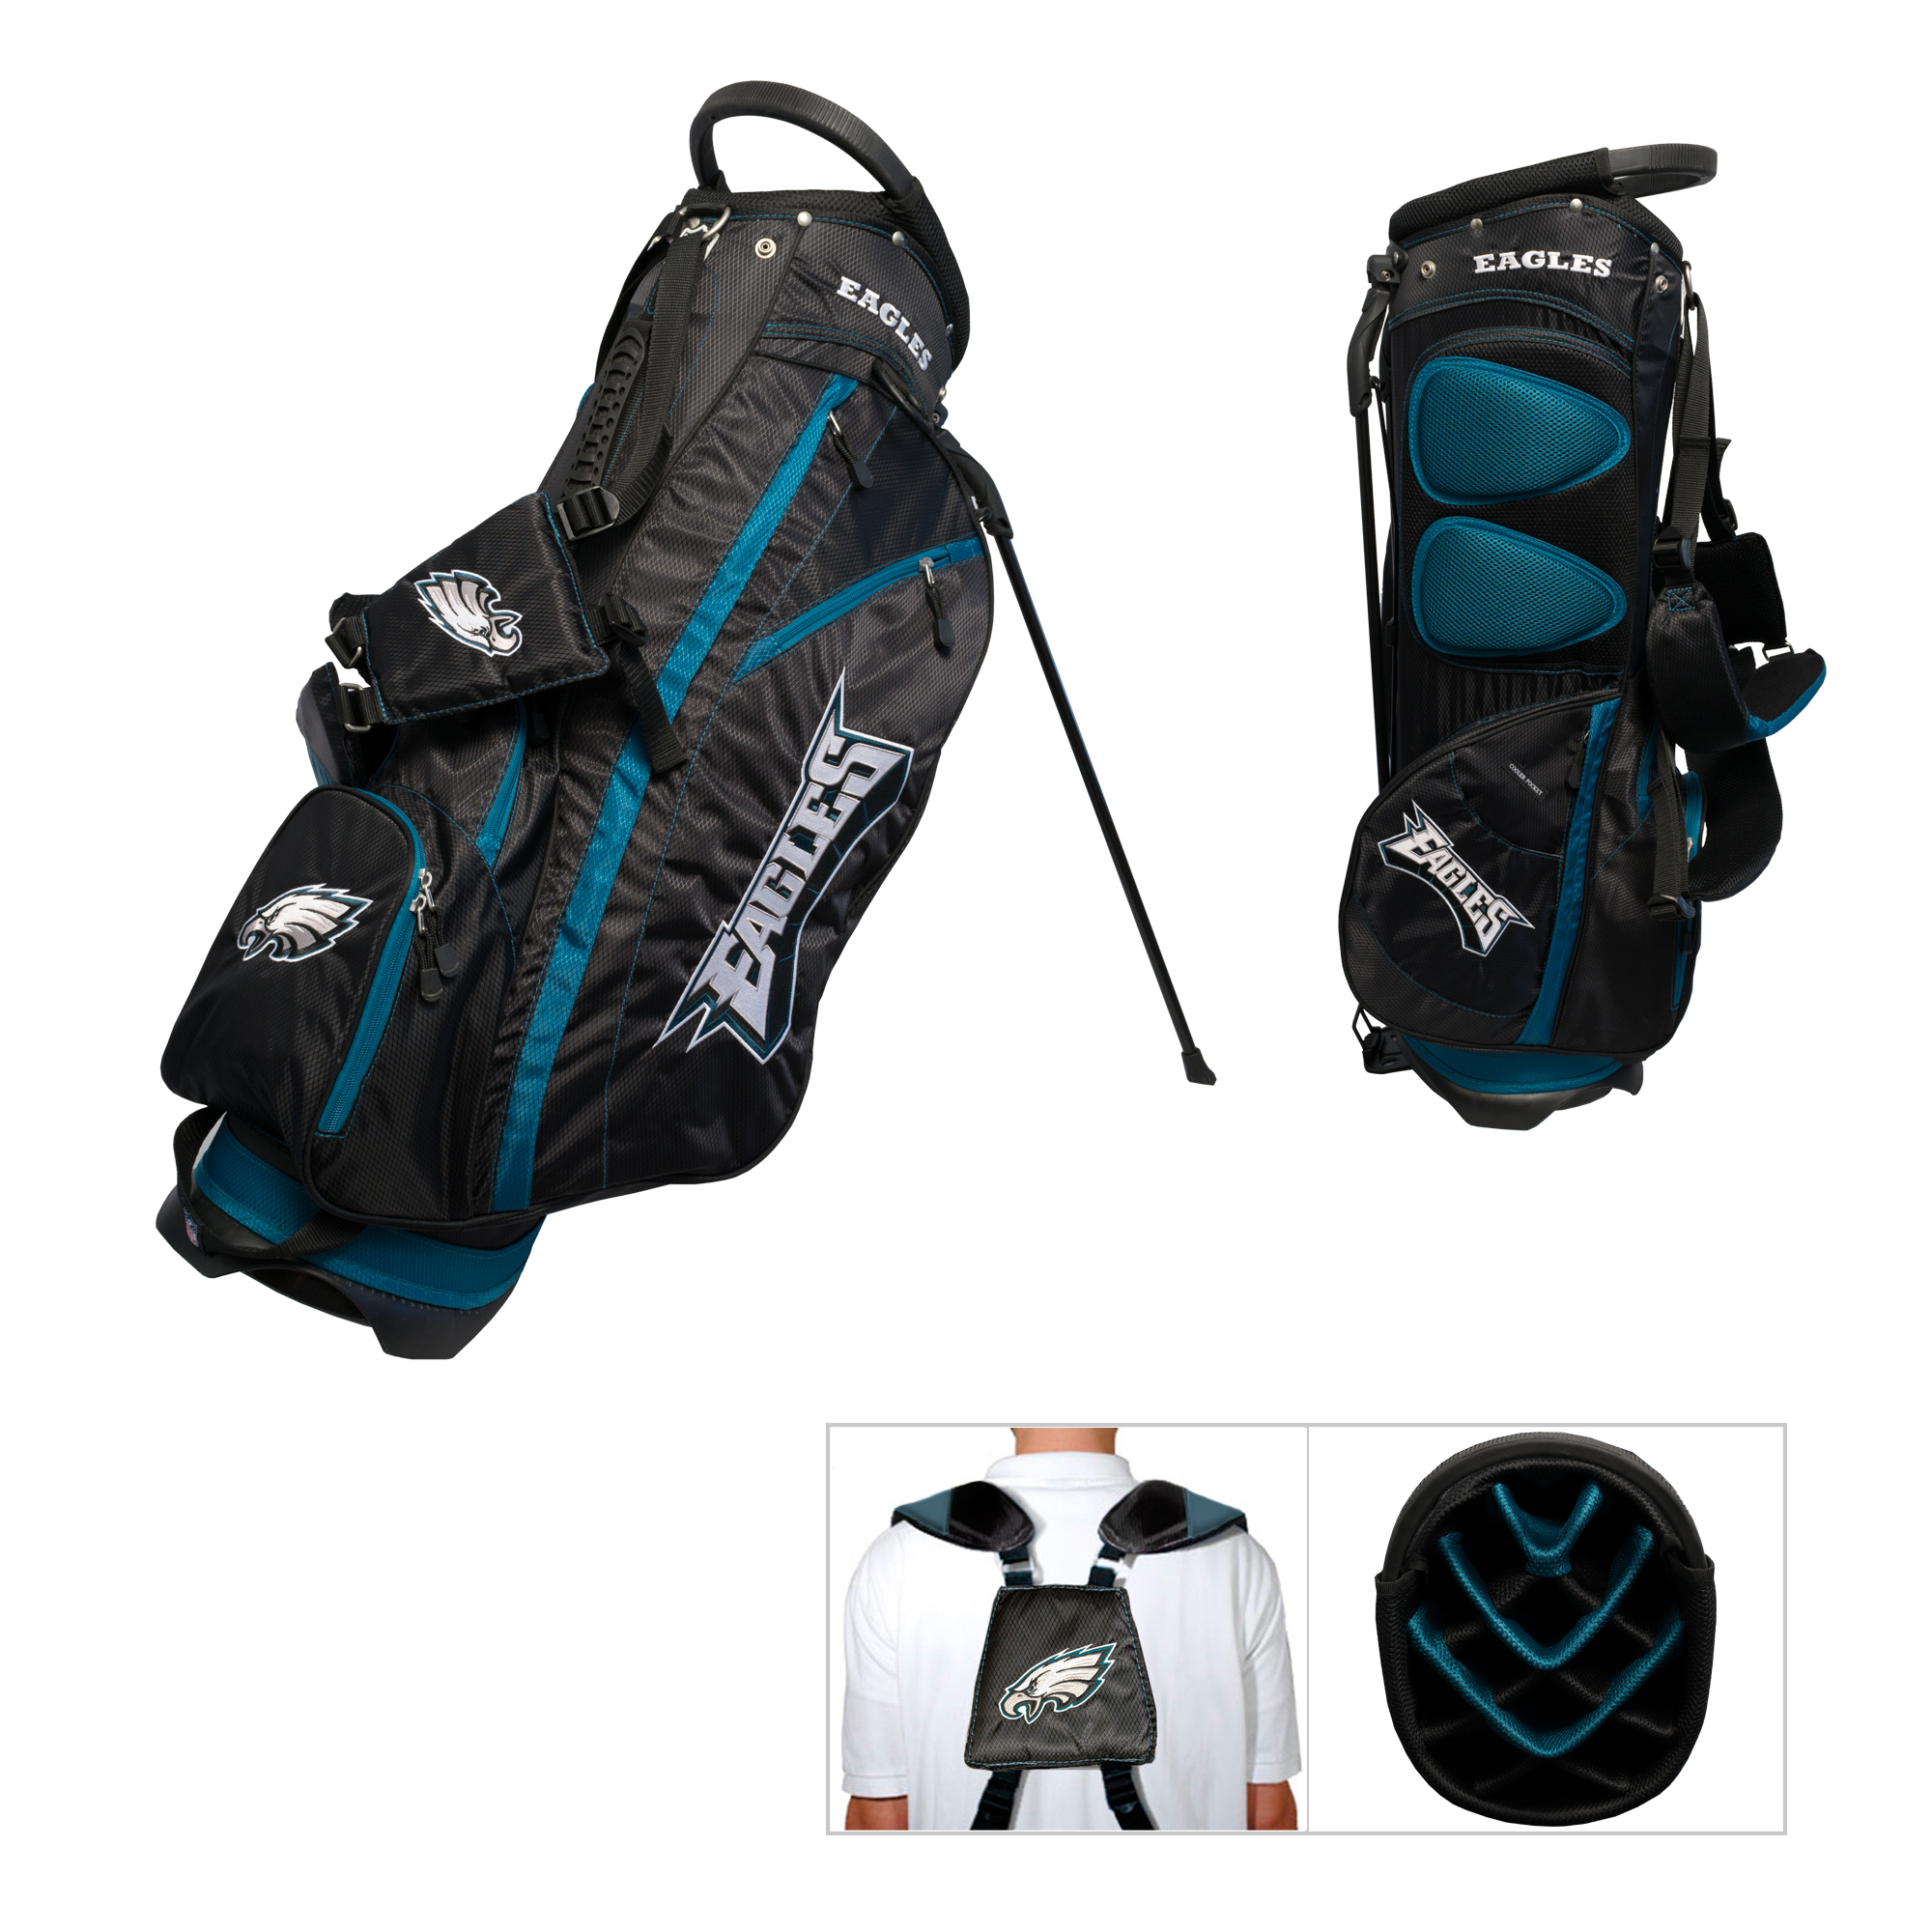 low priced 8d9ab 1cdc3 Philadelphia Eagles Golf Stand Bag